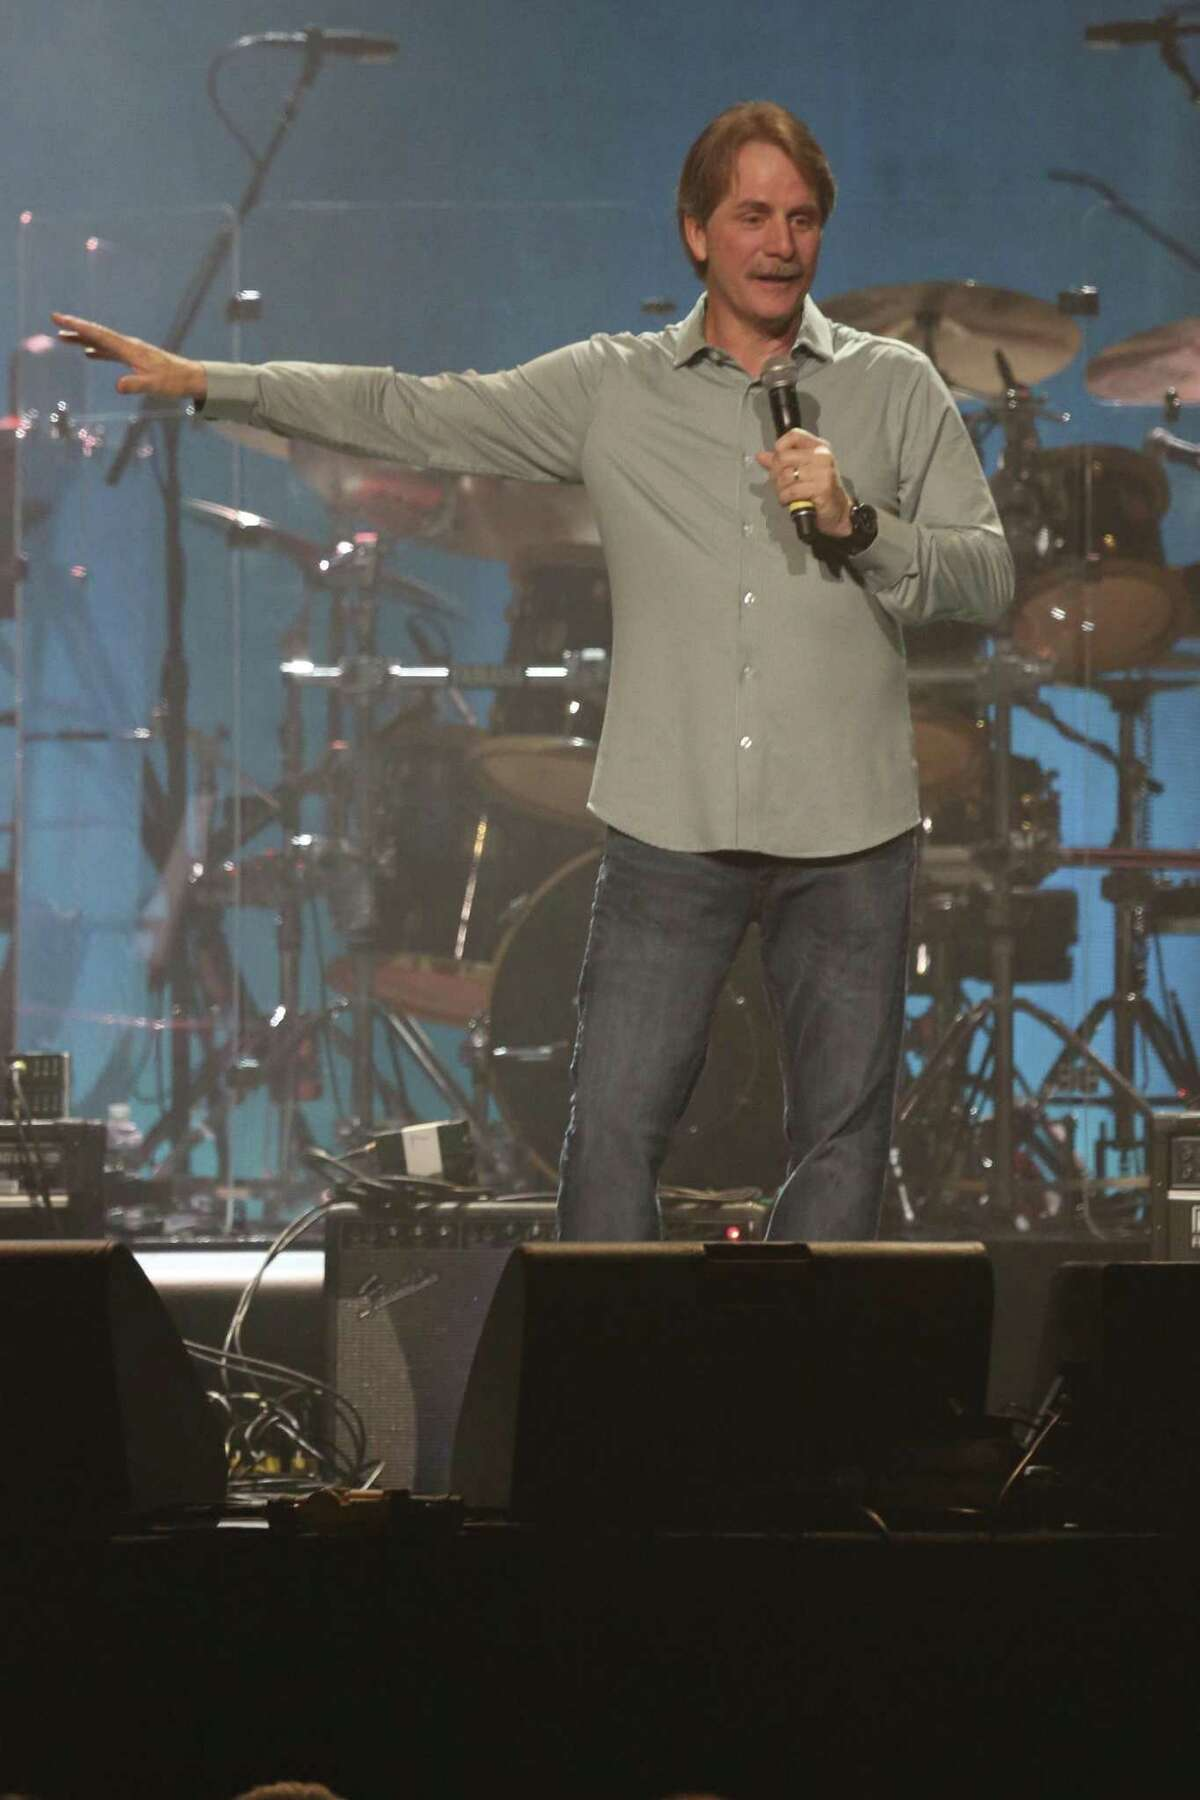 Jeff Foxworthy Aug. 28, 2021 at Foxwoods' Premier Theater, Mashantucket Find out more